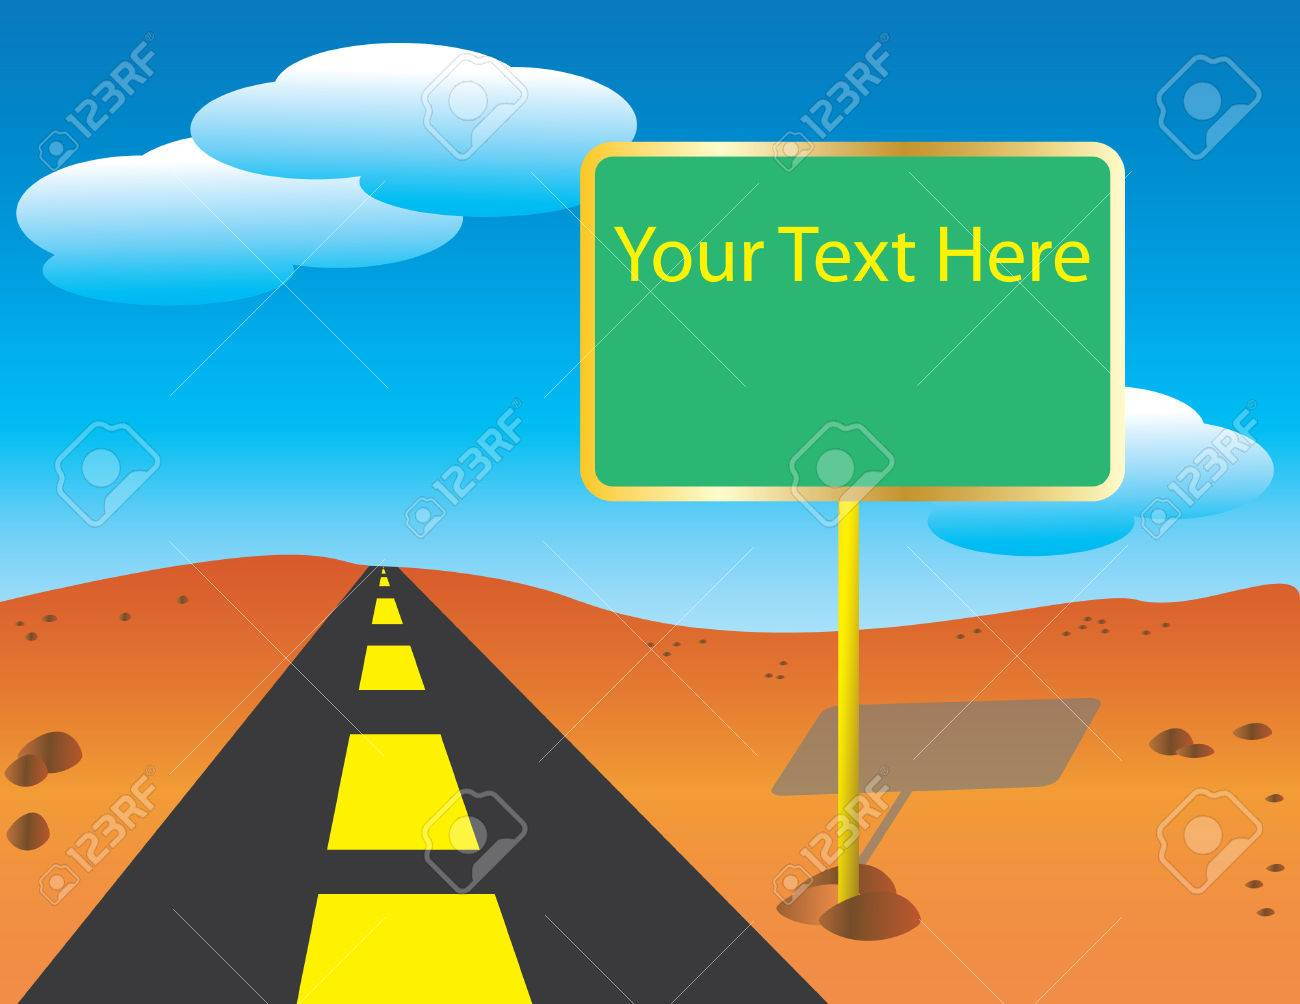 Road Sign Stock Vector - 6694430